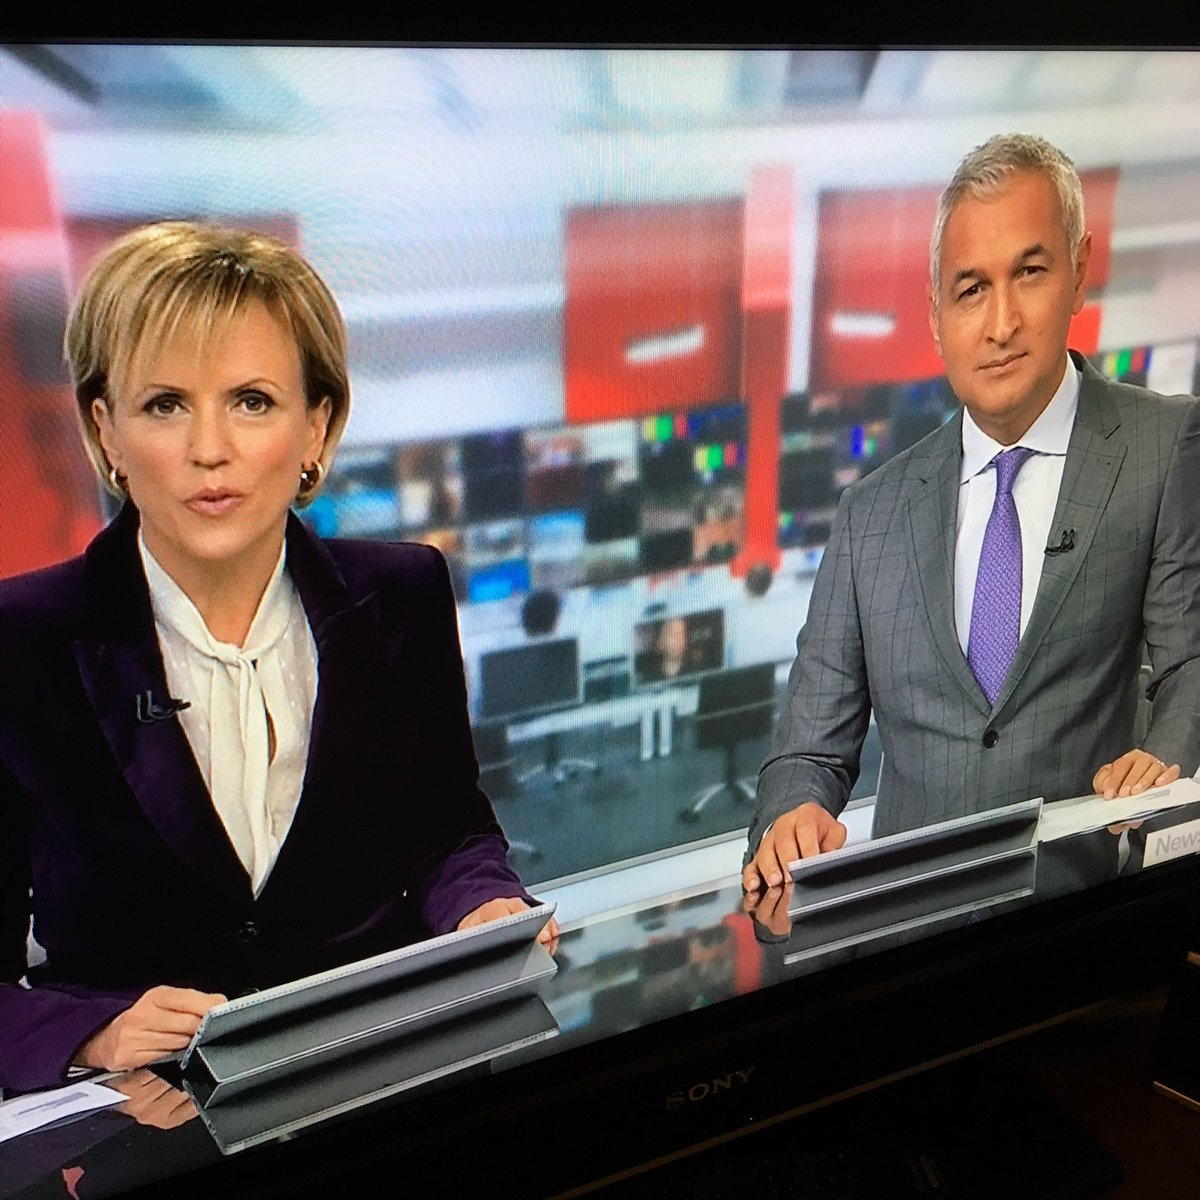 Did your country's newsreaders dress in tribute to Prince tonight? Ours did. (@Hilary_Barry in purple velvet.